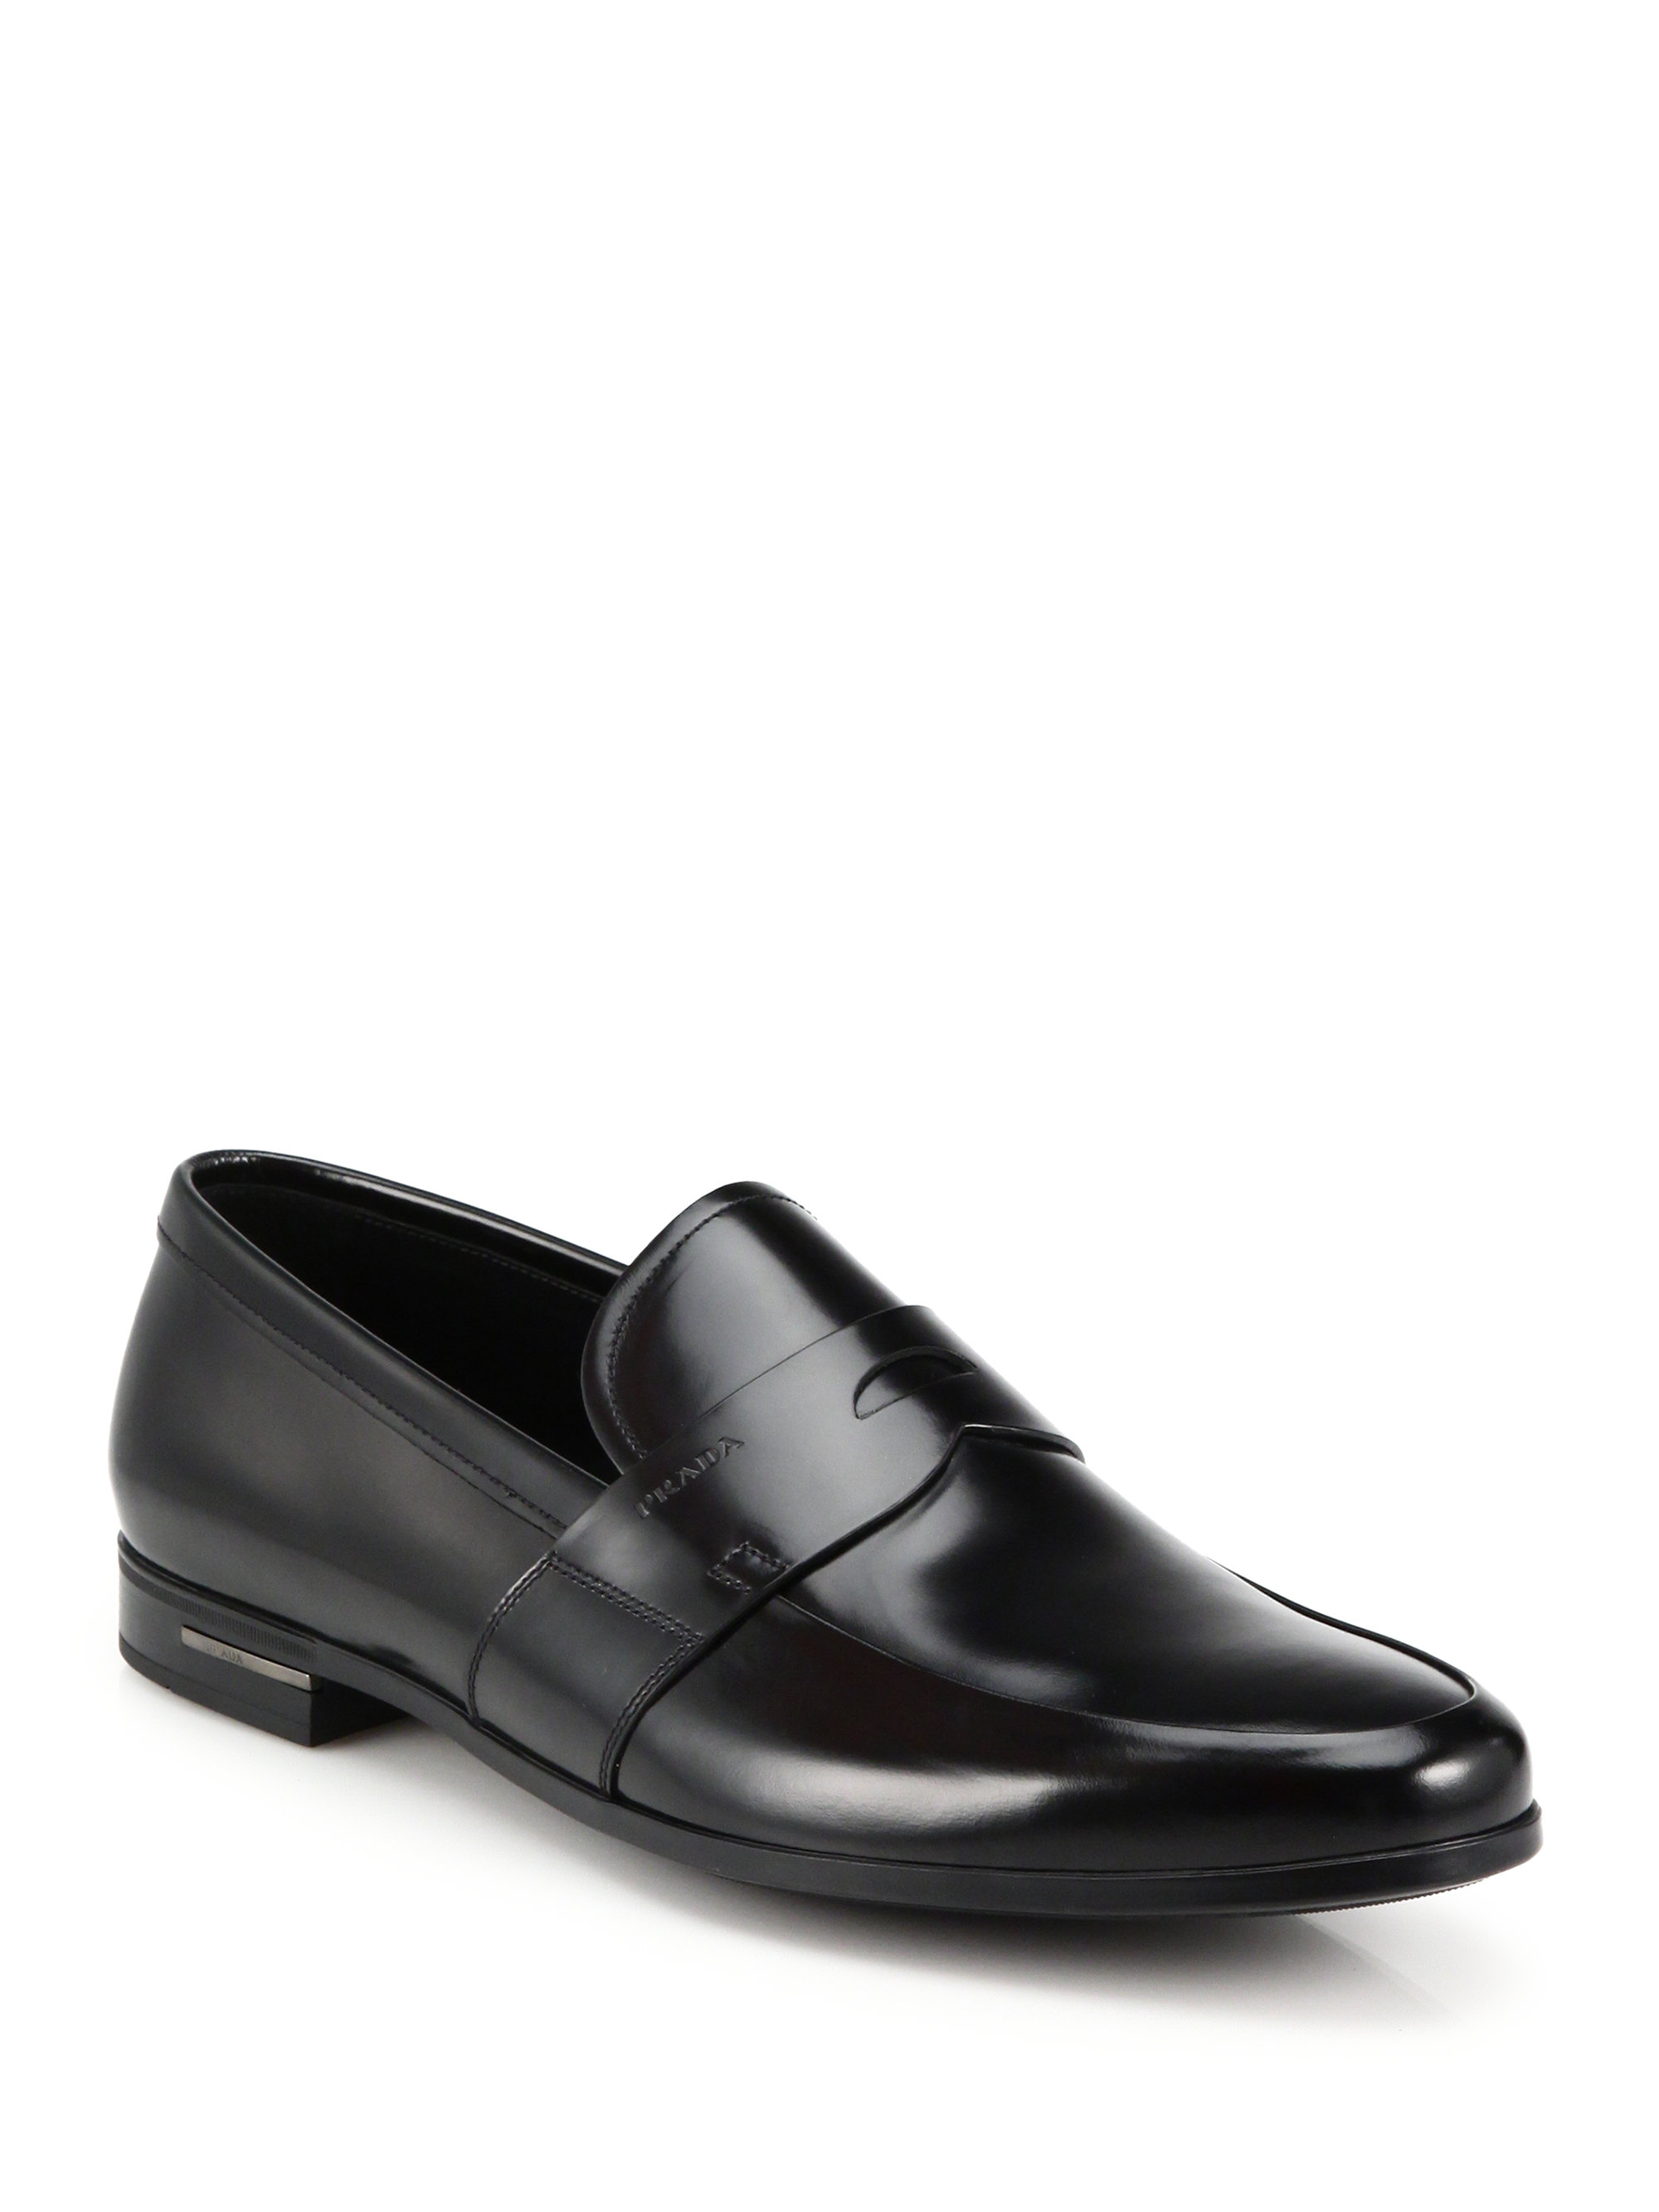 Lyst Prada Spazzolato Leather Penny Loafers In Black For Men